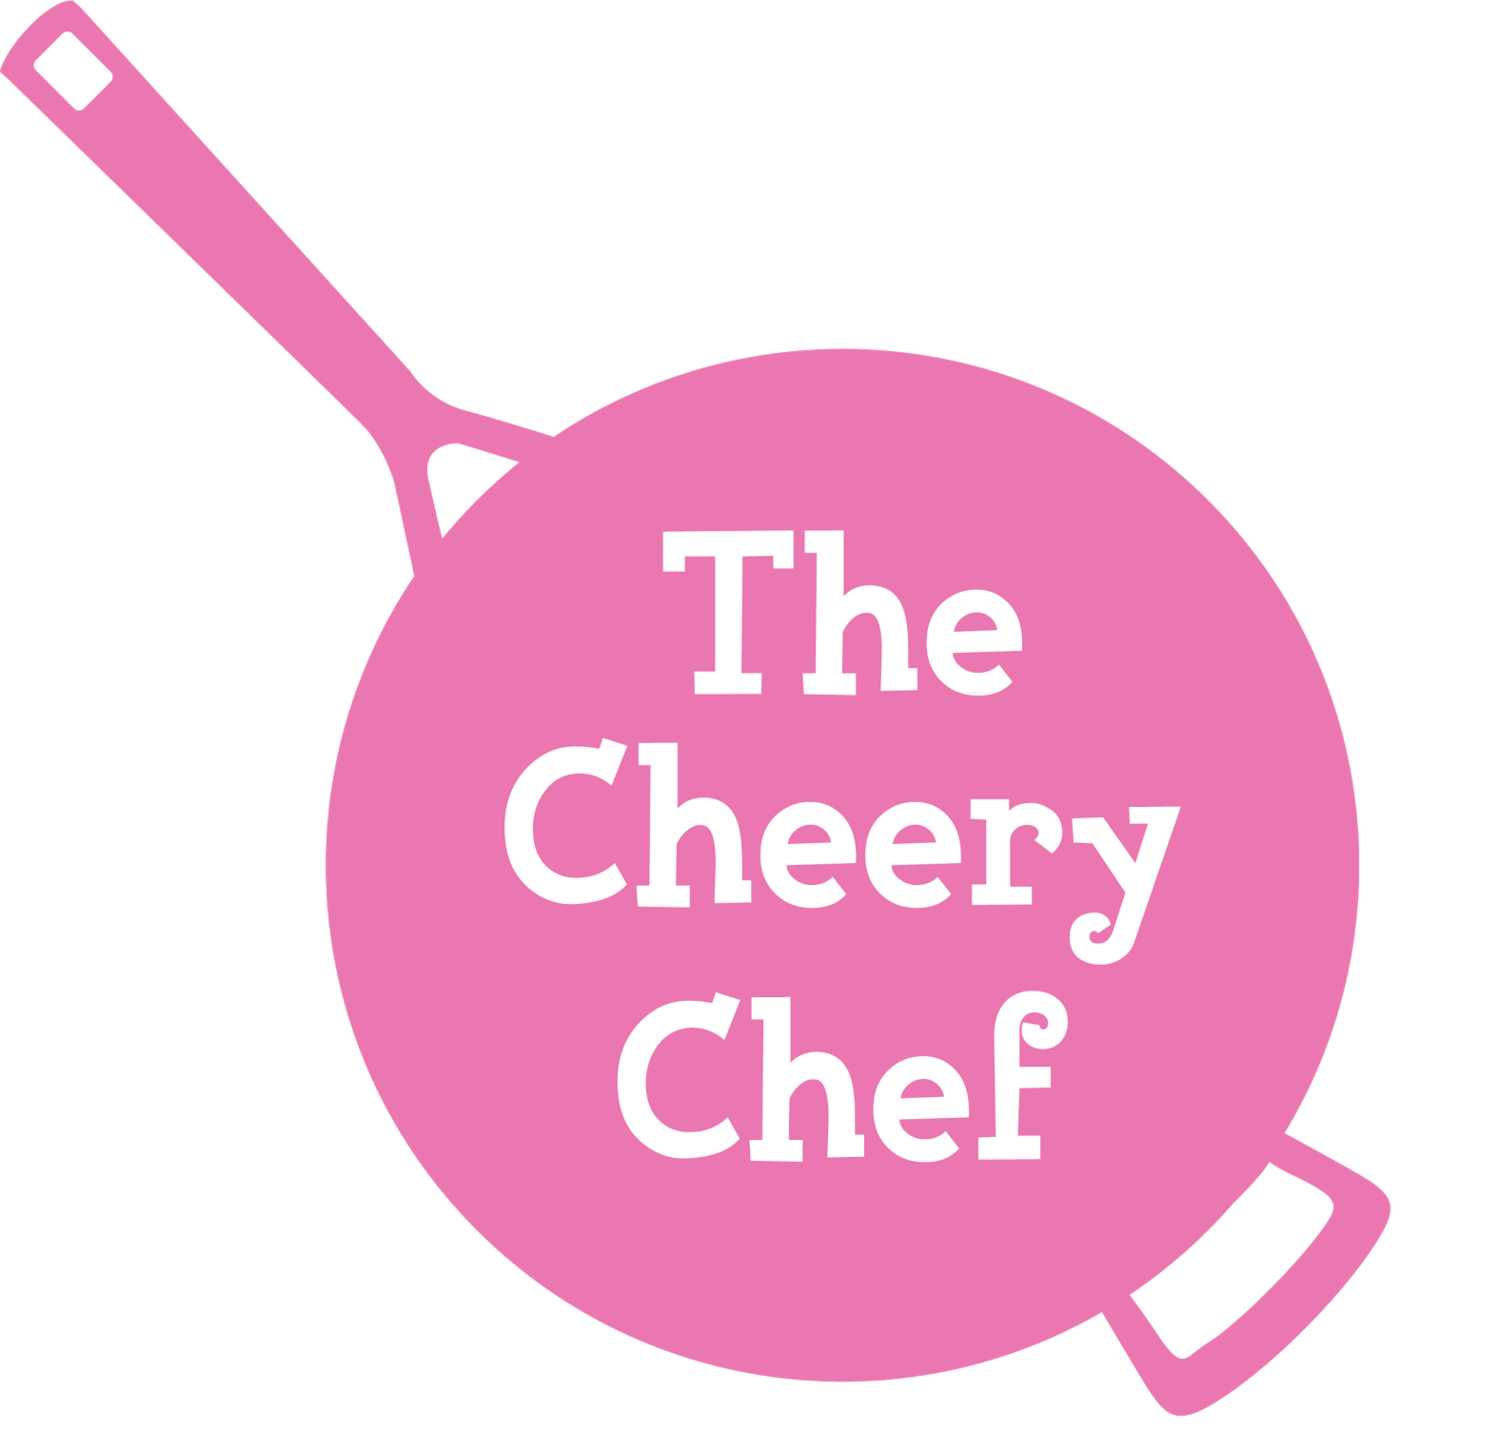 The Cheery Chef